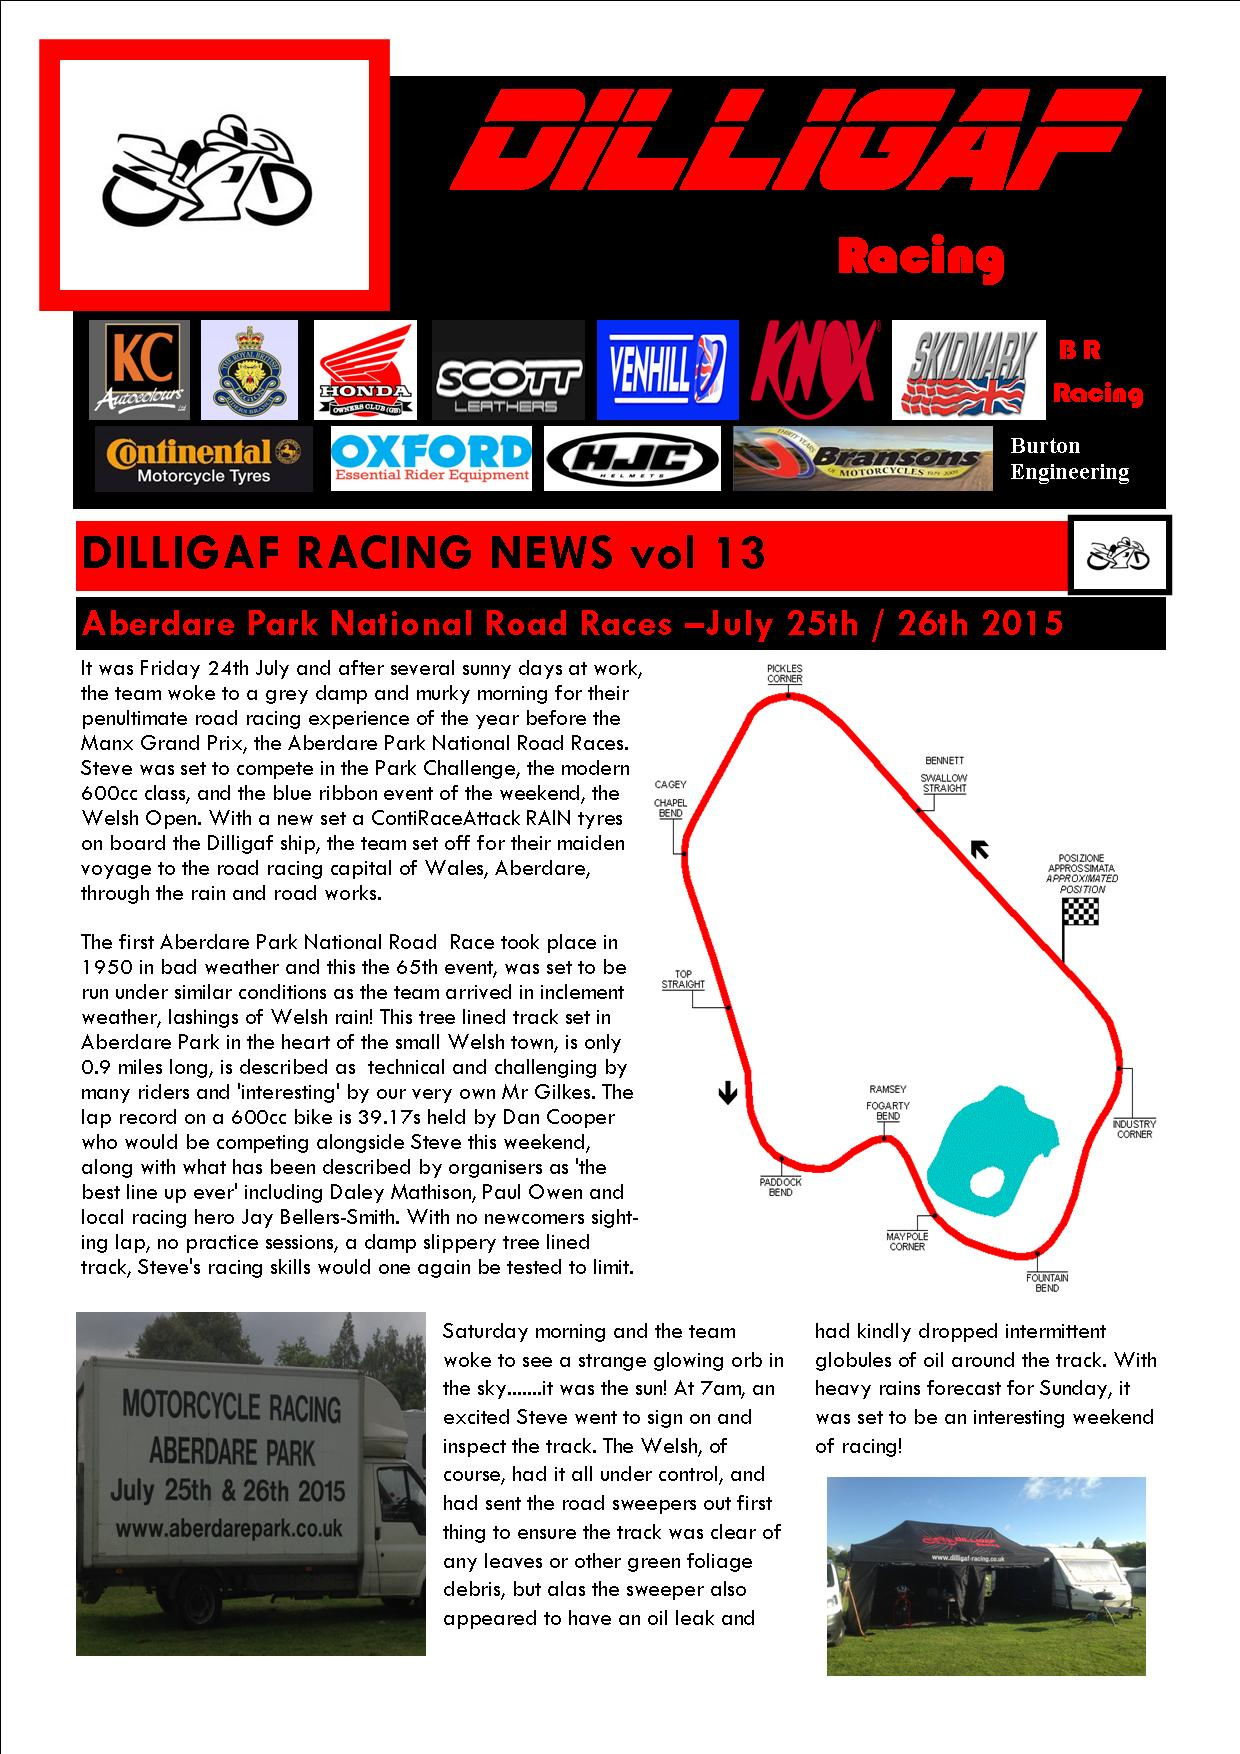 dilligaf racing news vol 13 Aberdare National park p1